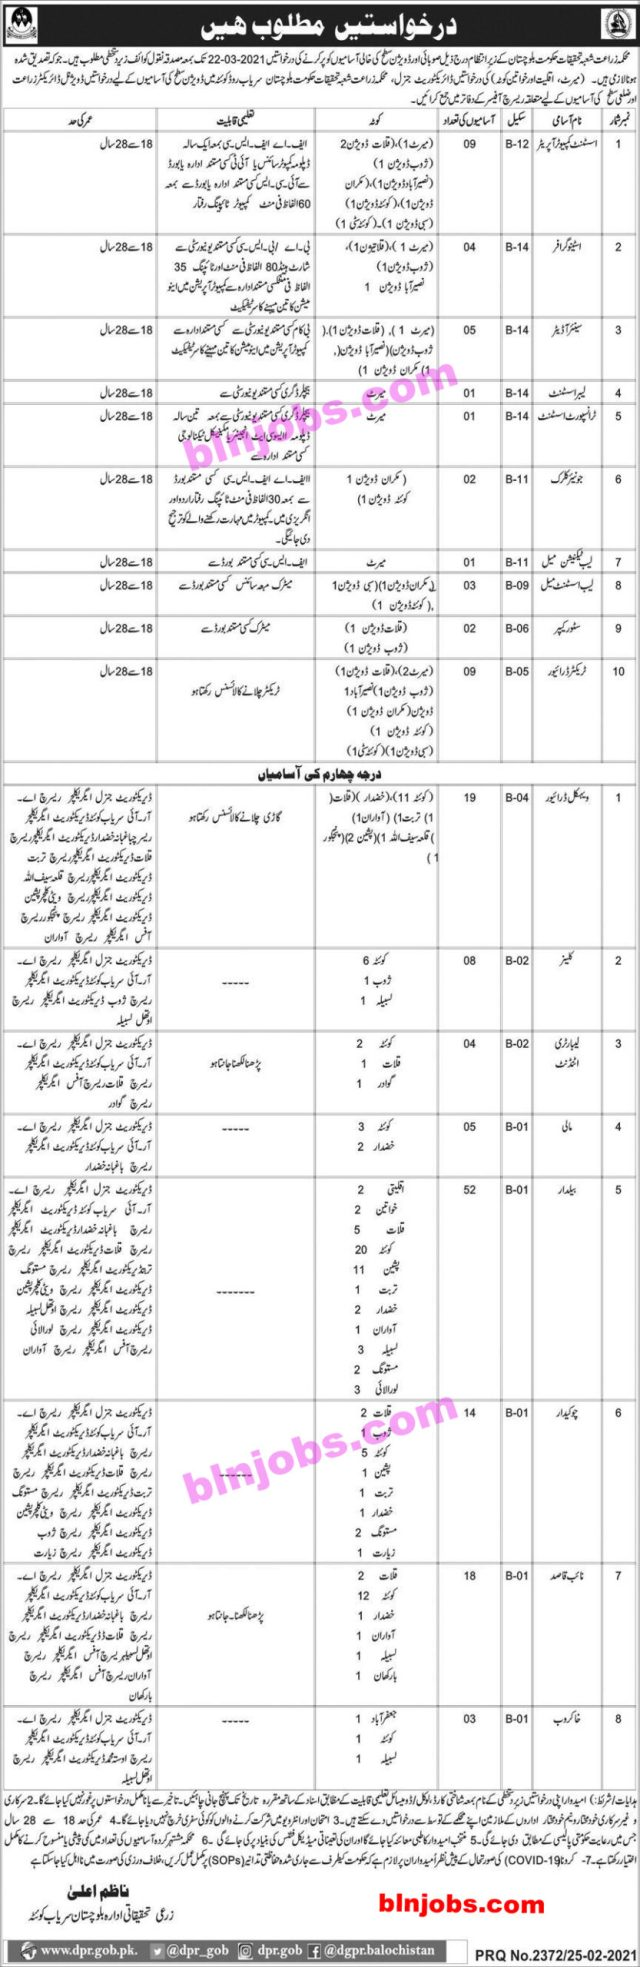 Balochistan Agriculture Research Department Jobs 2021